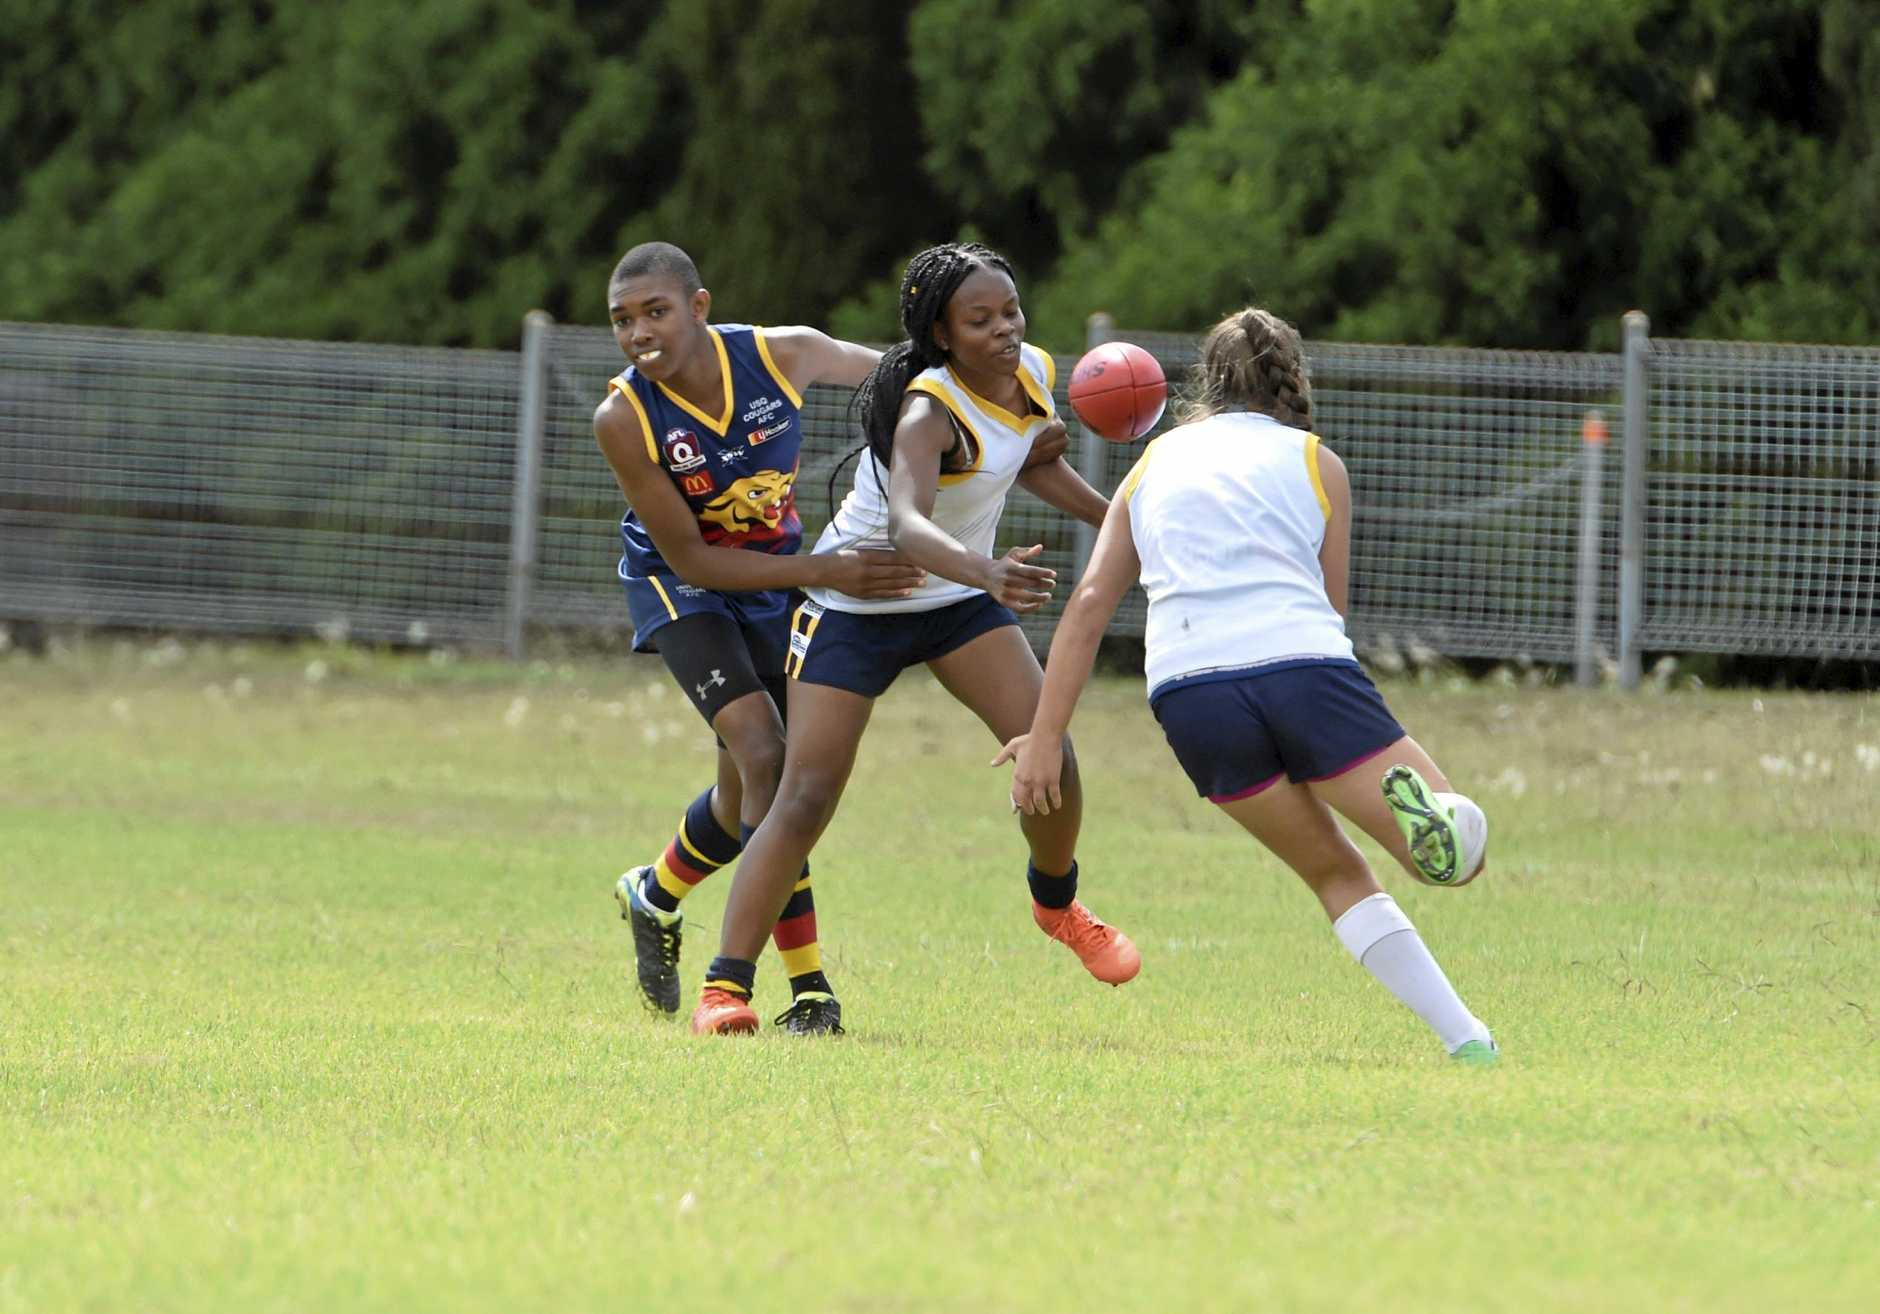 FINE FORM: Nyengela Mwajuma (middle) booted home three goals for the USQ Cougars in their win over South Toowoomba in the Westpac Cup last weekend.